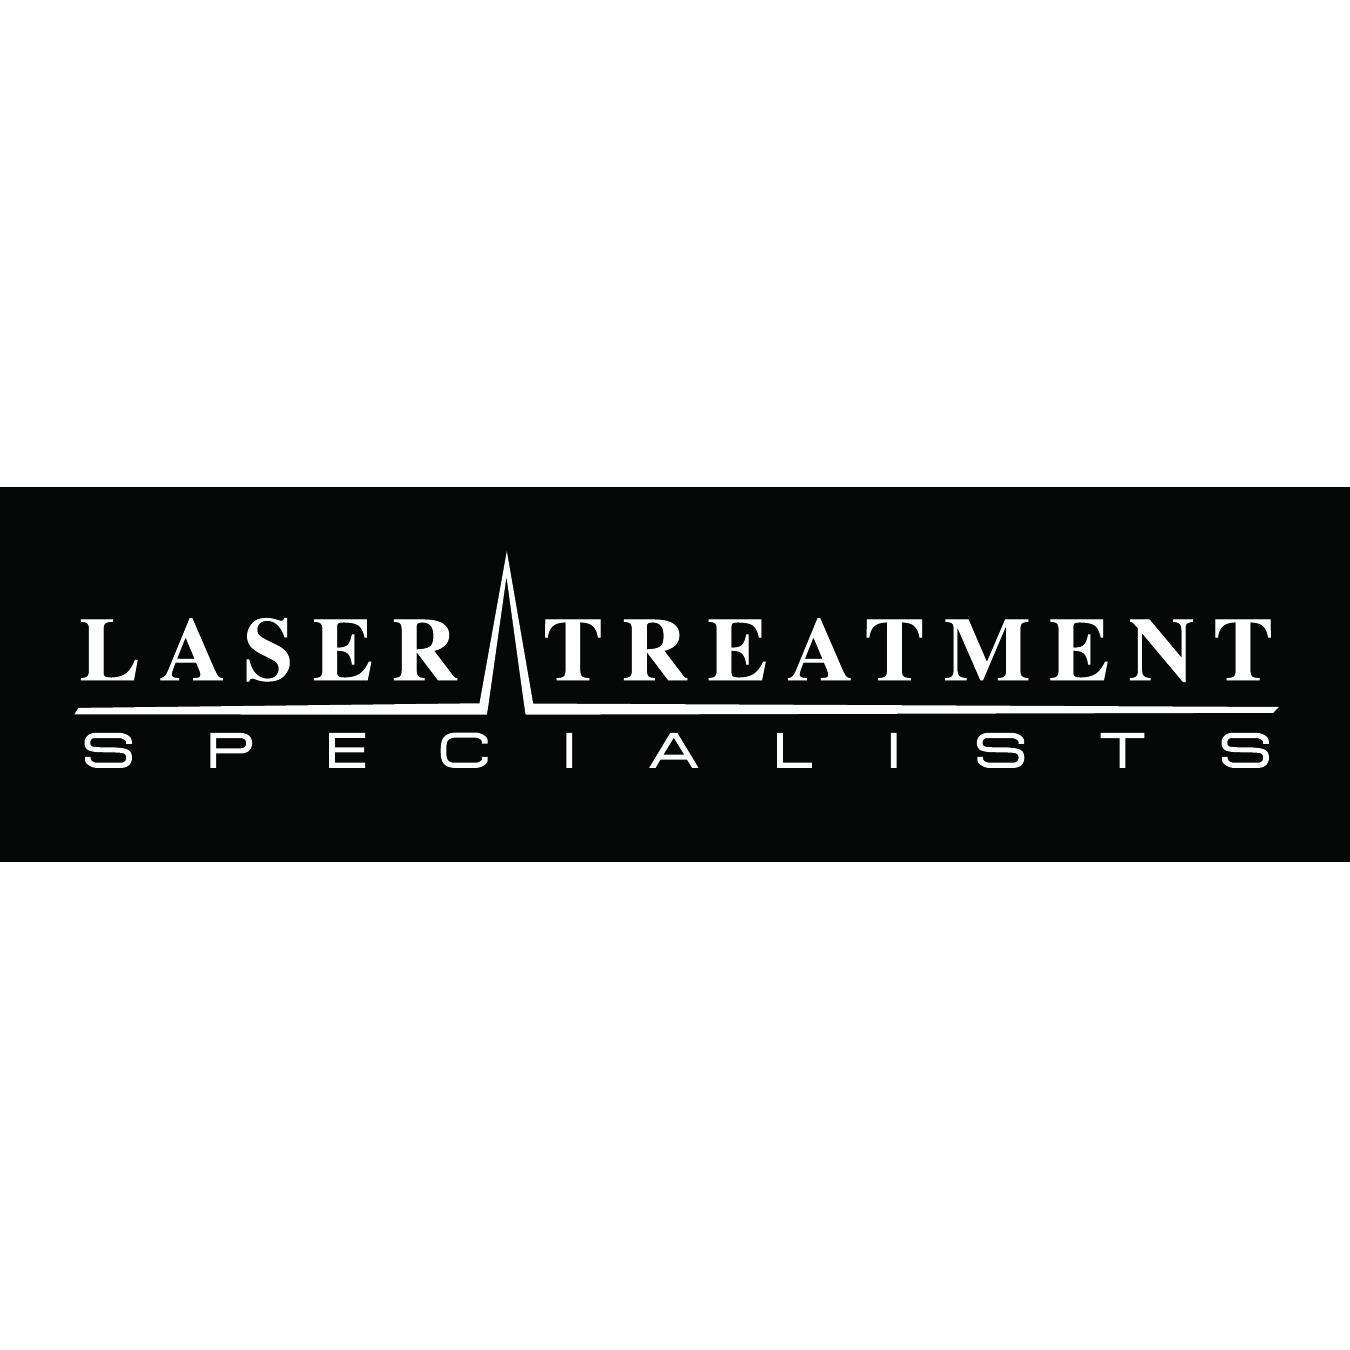 Laser Treatment Specialists